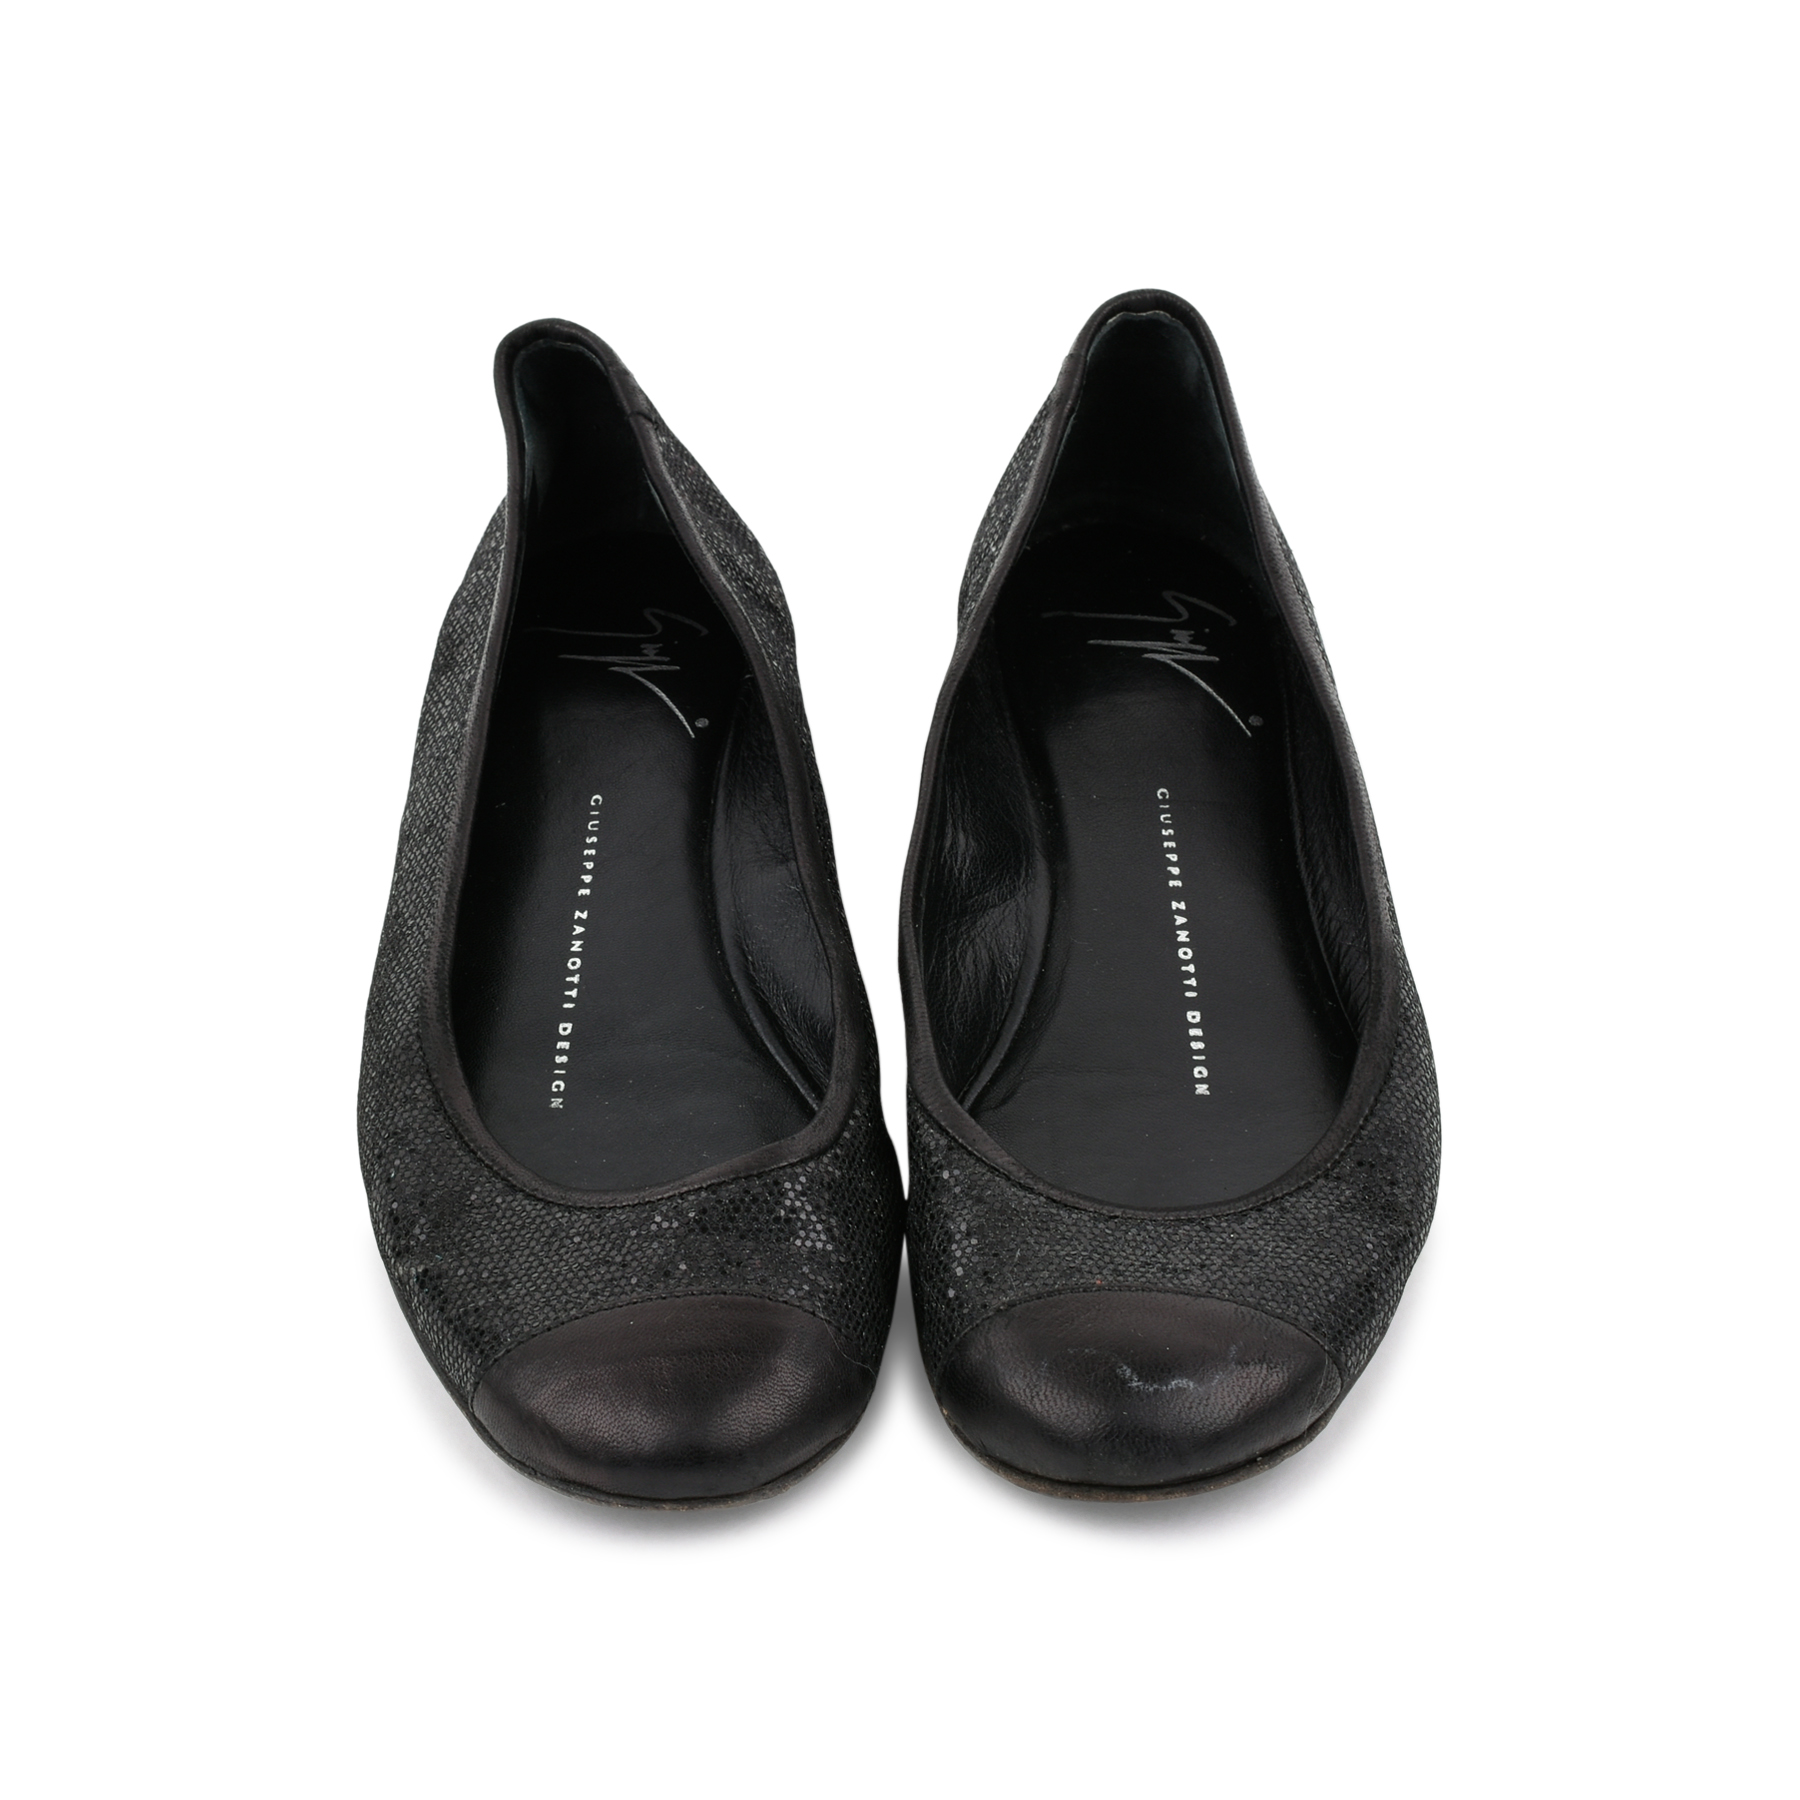 44ade2fe72 Authentic Second Hand Giuseppe Zanotti Sparkle Ballet Flats (PSS-080-00283)  - THE FIFTH COLLECTION